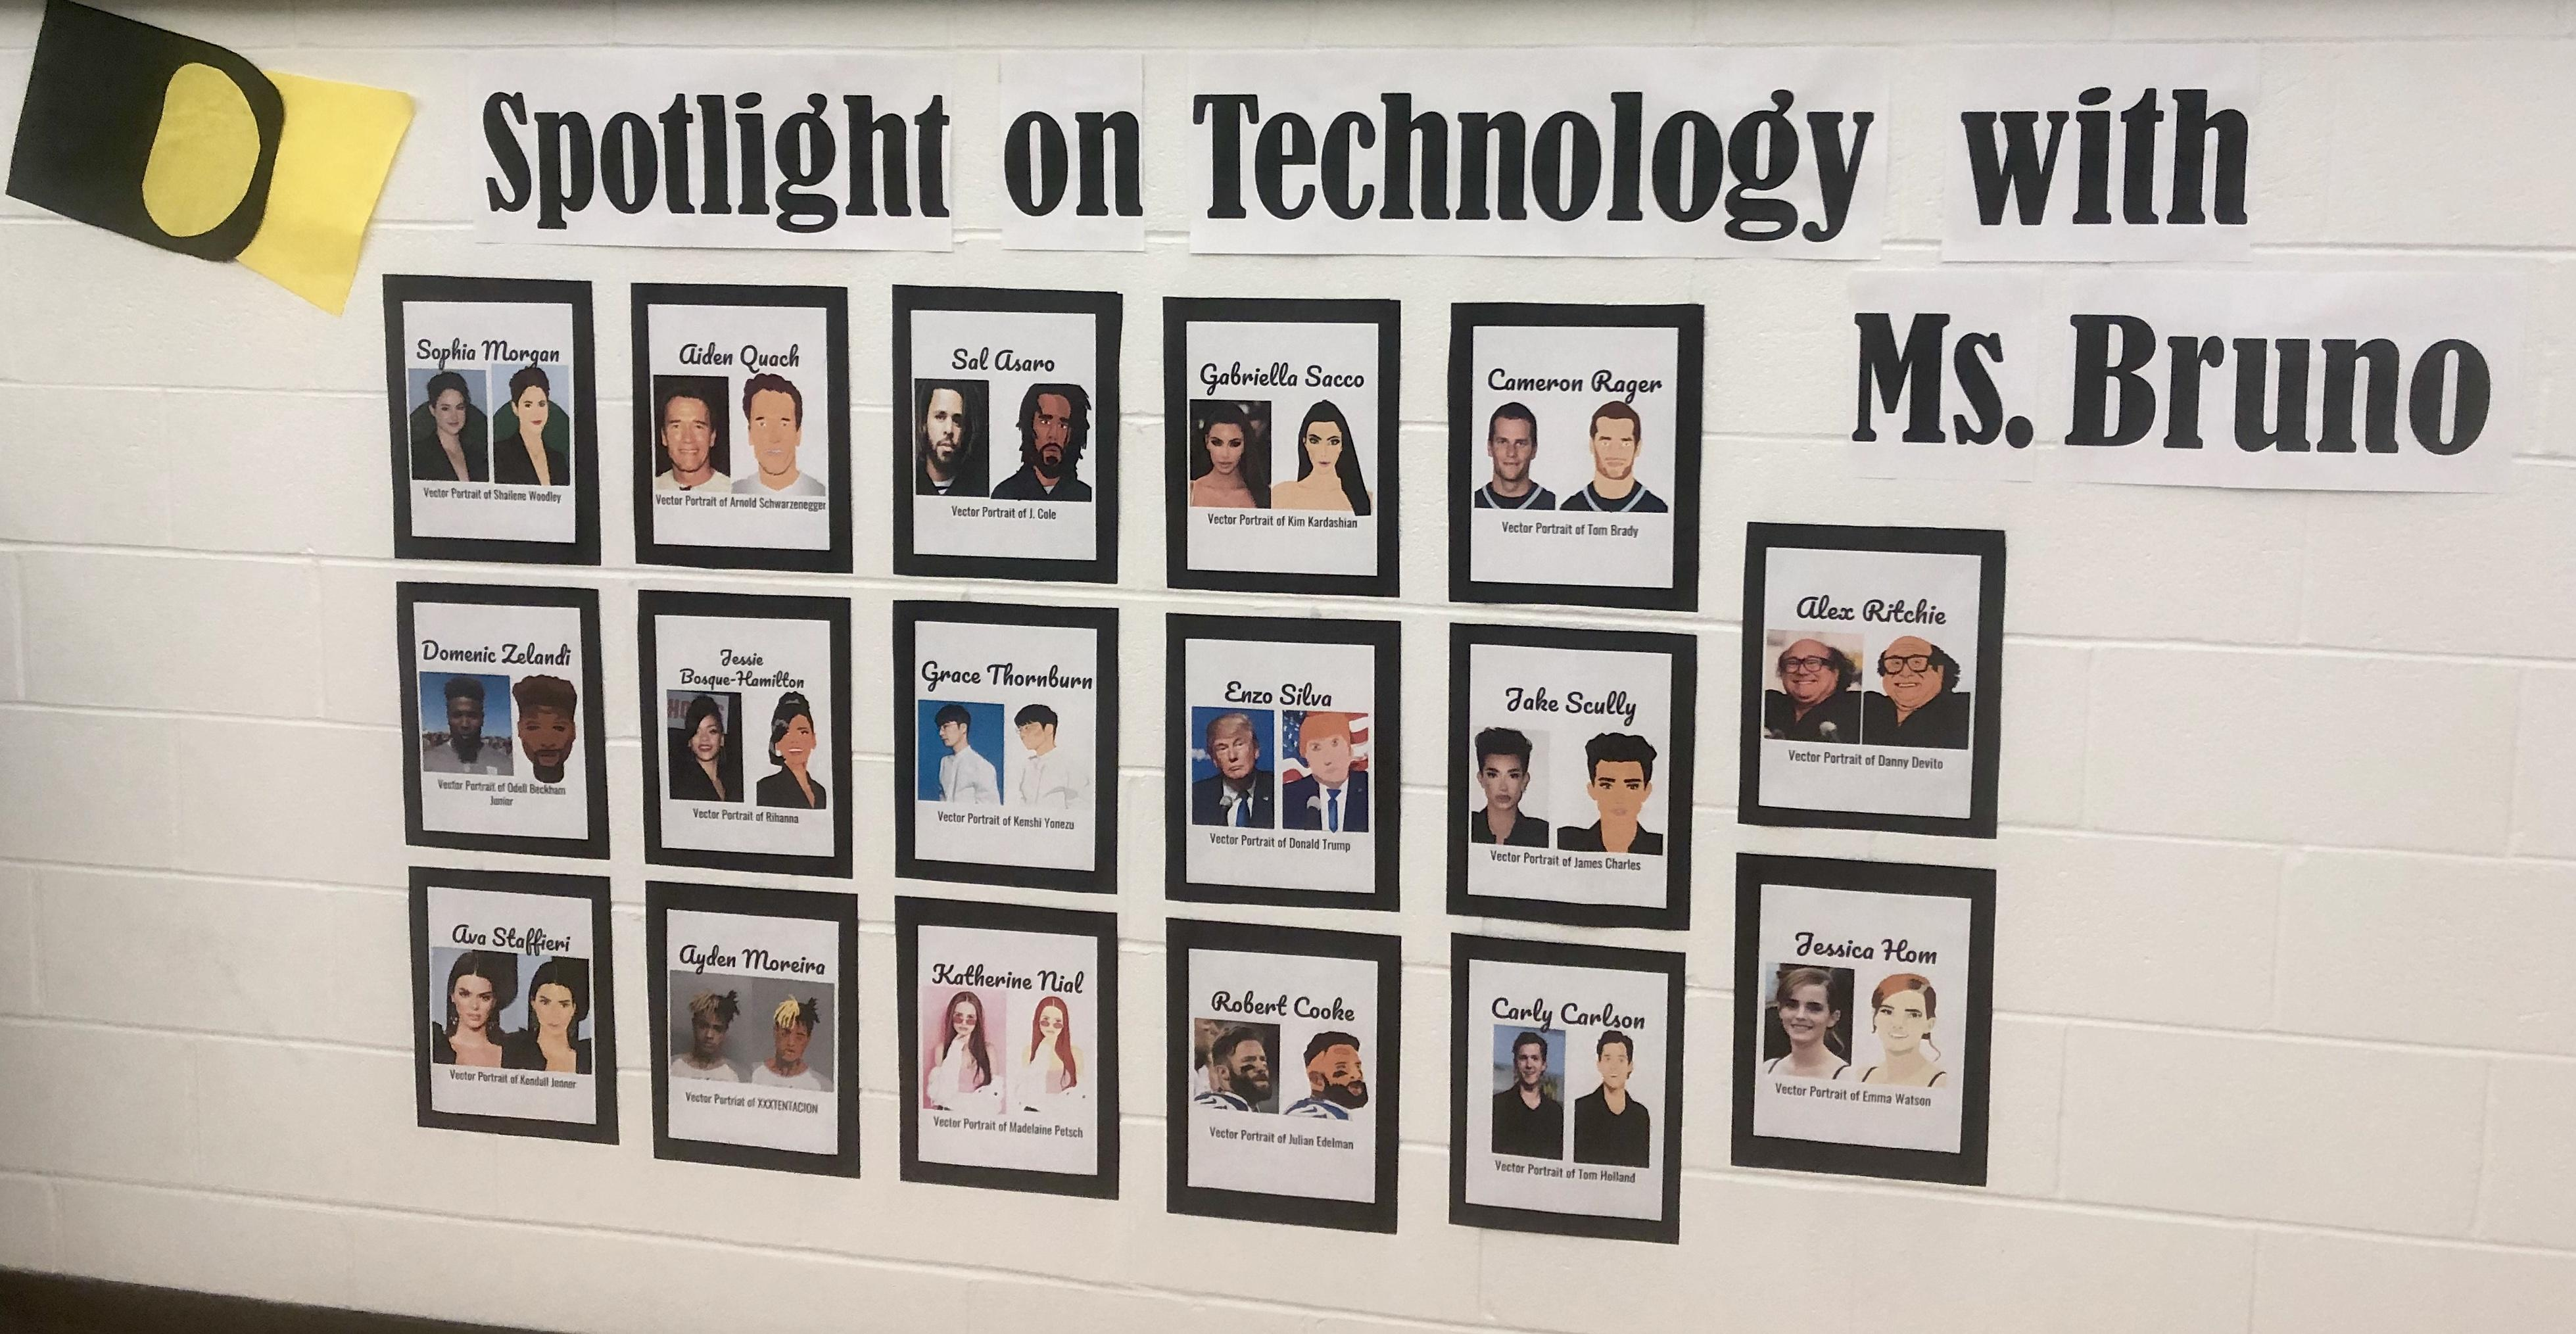 Spotlight on Technology with Ms. Bruno - Photo #1